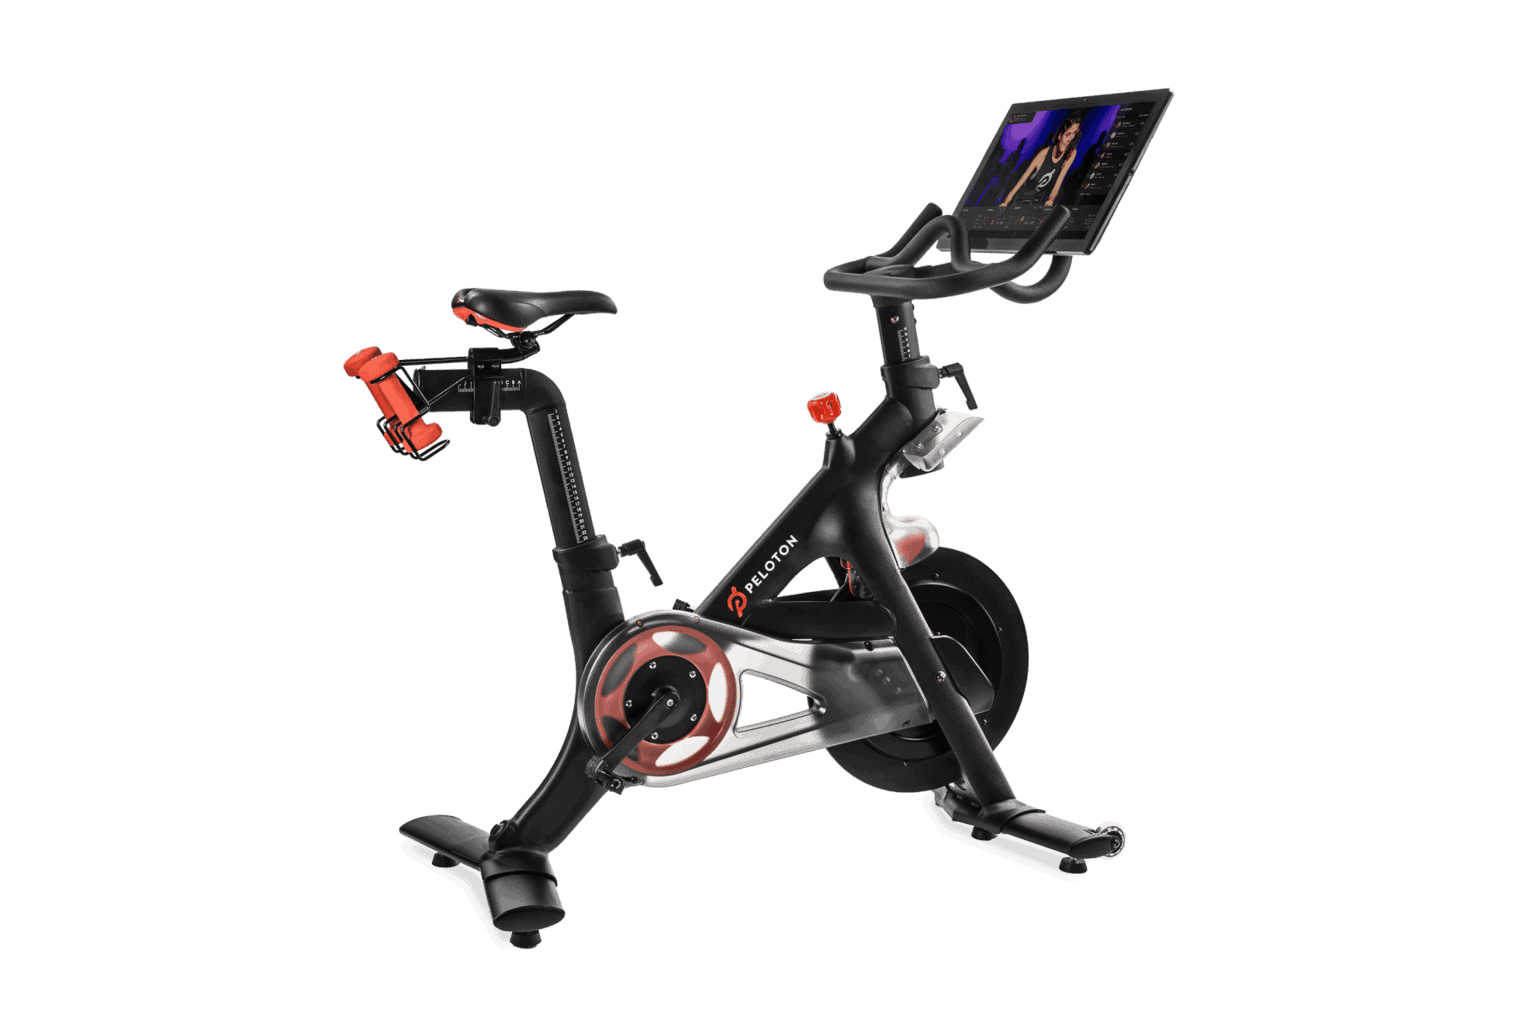 Is the Peloton bike worth it